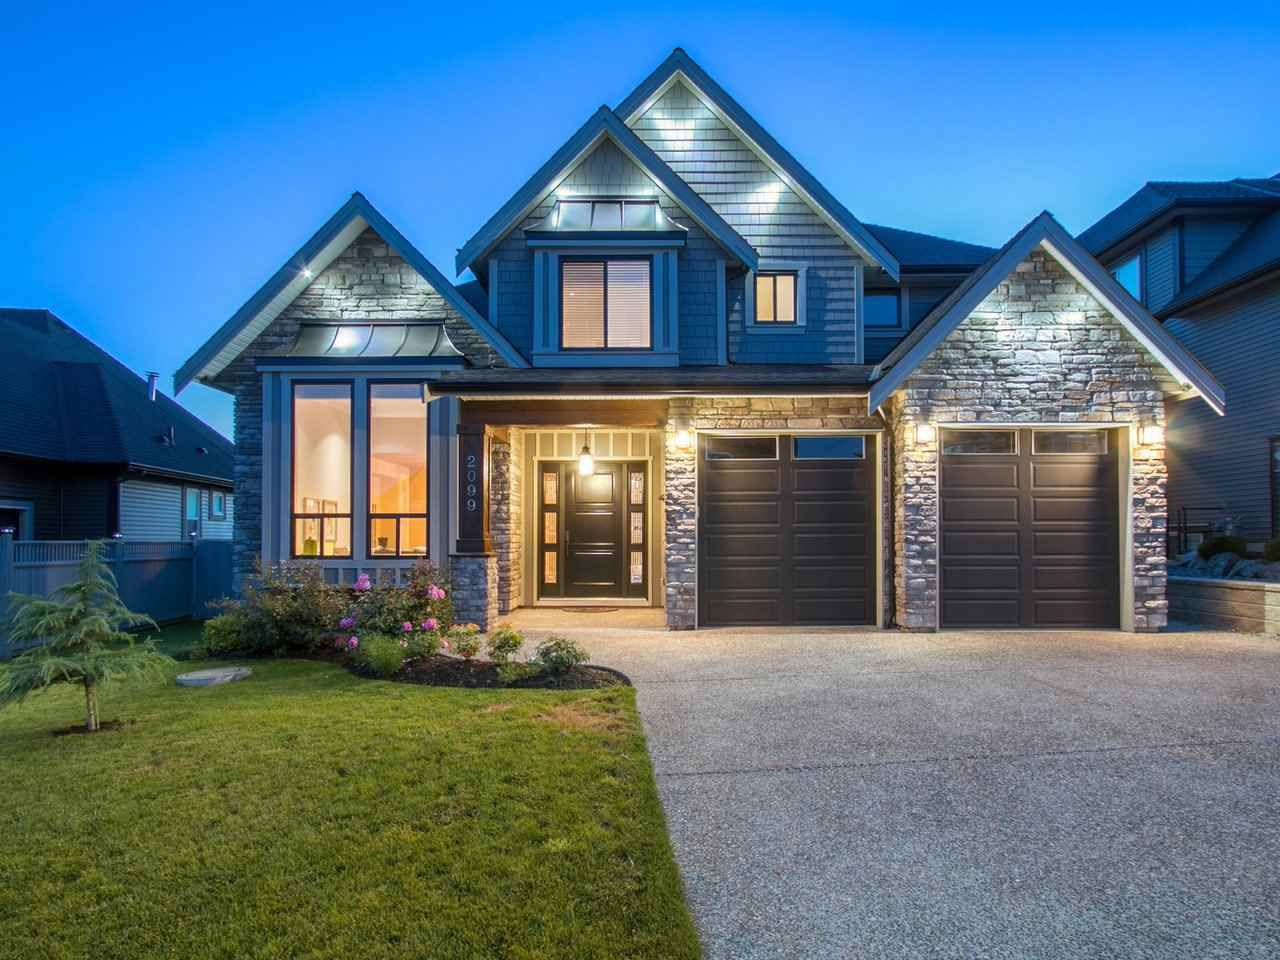 Main Photo: 2099 RIESLING Drive in Abbotsford: Aberdeen House for sale : MLS®# R2180981